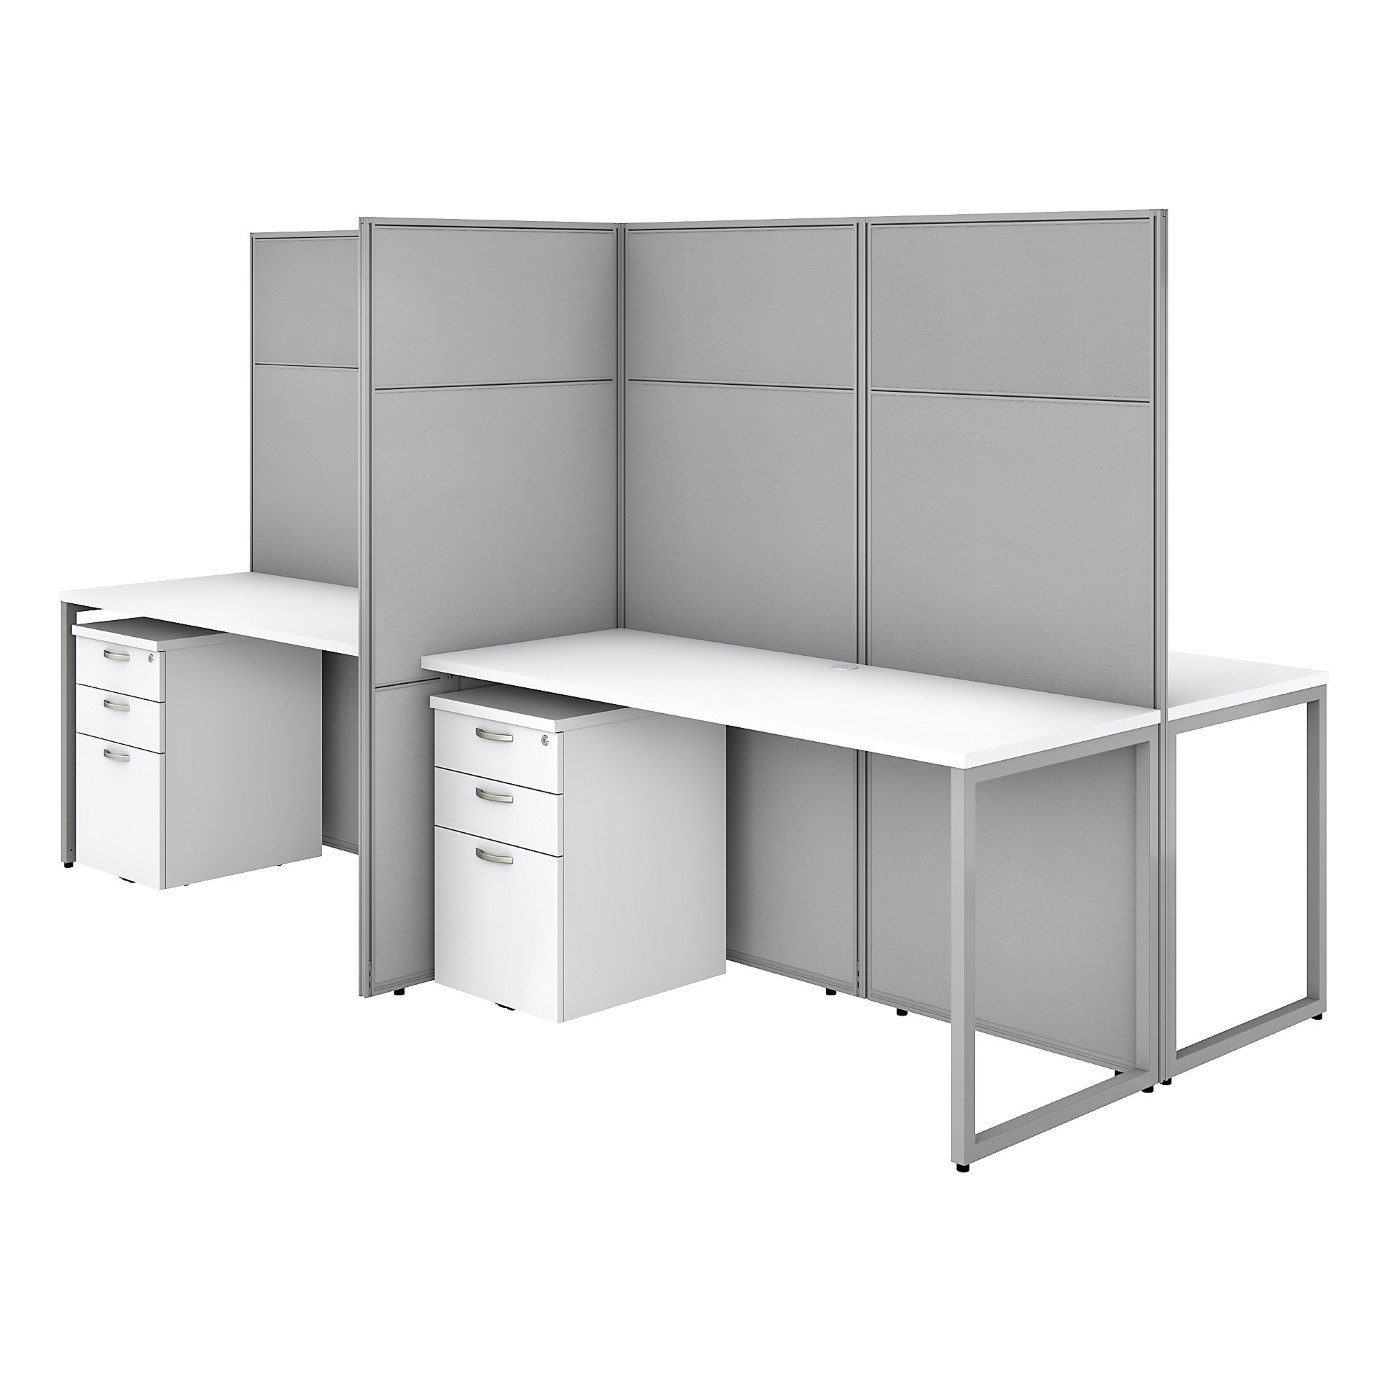 BUSH BUSINESS FURNITURE EASY OFFICE 60W 4 PERSON CUBICLE DESK WITH FILE CABINETS AND 66H PANELS. FREE SHIPPING SALE DEDUCT 10% MORE ENTER '10percent' IN COUPON CODE BOX WHILE CHECKING OUT. ENDS 5-31-20.